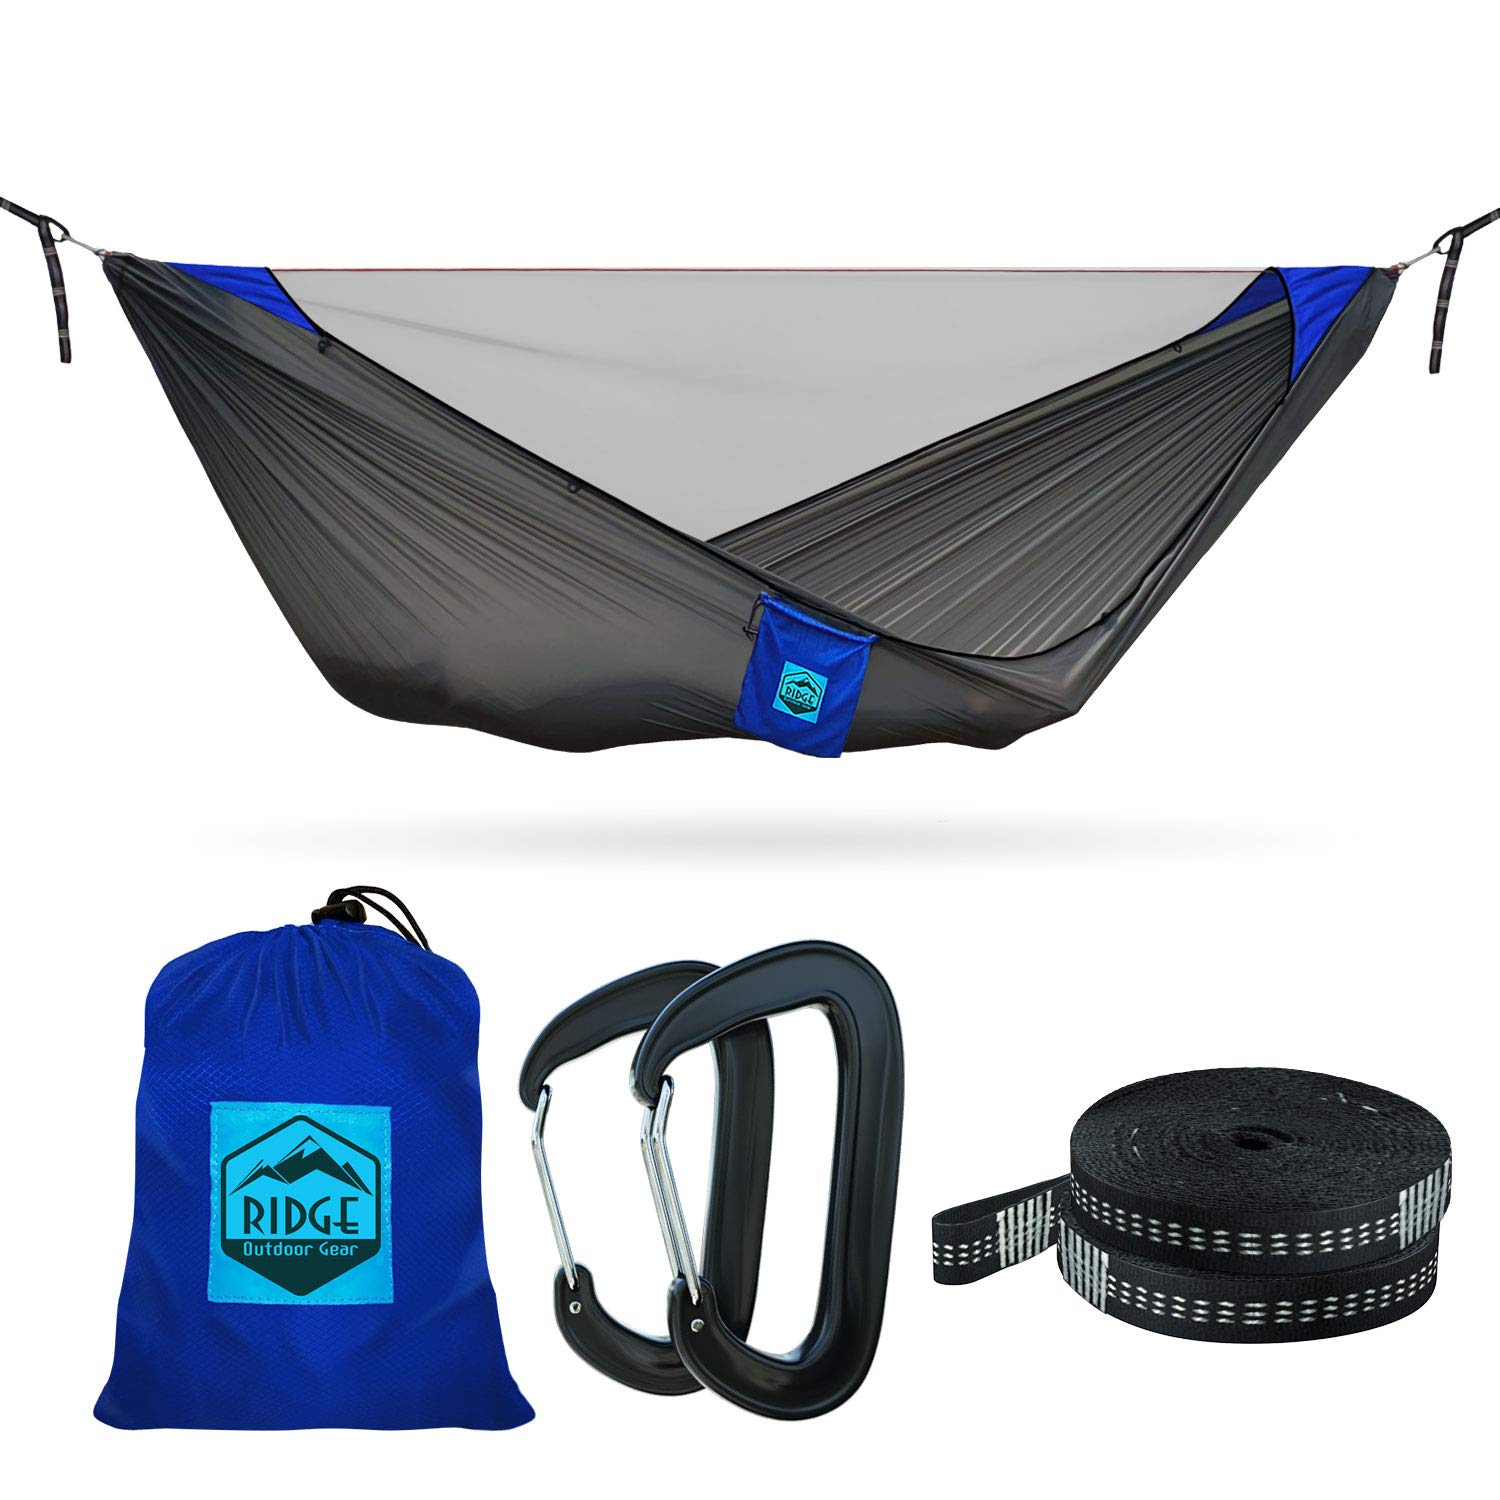 11Ft Camping Hammock mit Mosquito Net - 2019 Upgraded - Ultralight Hammock Tent Bundle mit Bug Netting, Straps, und Carabiners (Grey-Blue Ripstop mit Ridgeline, Double/Large)